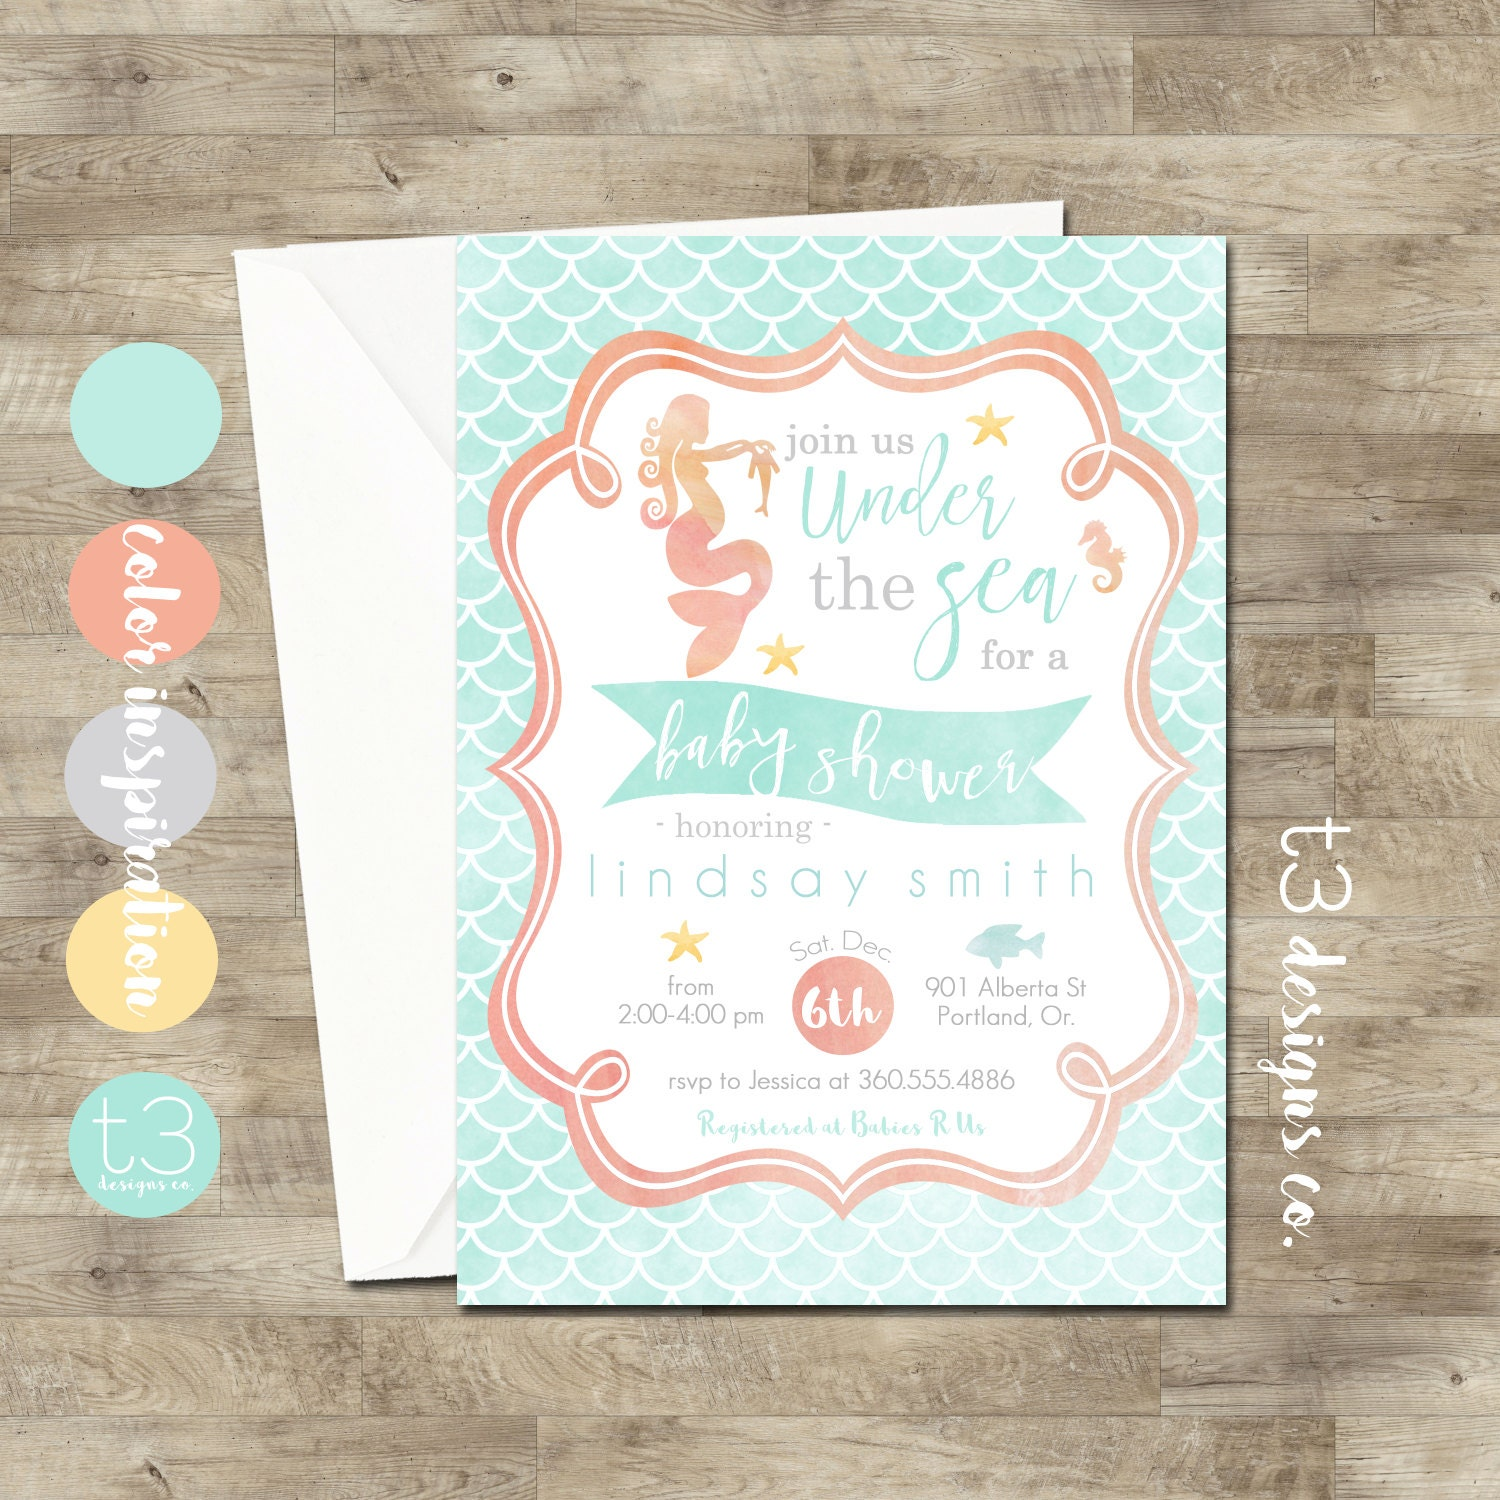 Mermaid baby shower invitations mermaid invitation baby shower mermaid baby shower invitations mermaid invitation baby shower invitation diy printable ocean baby shower mermaid watercolor filmwisefo